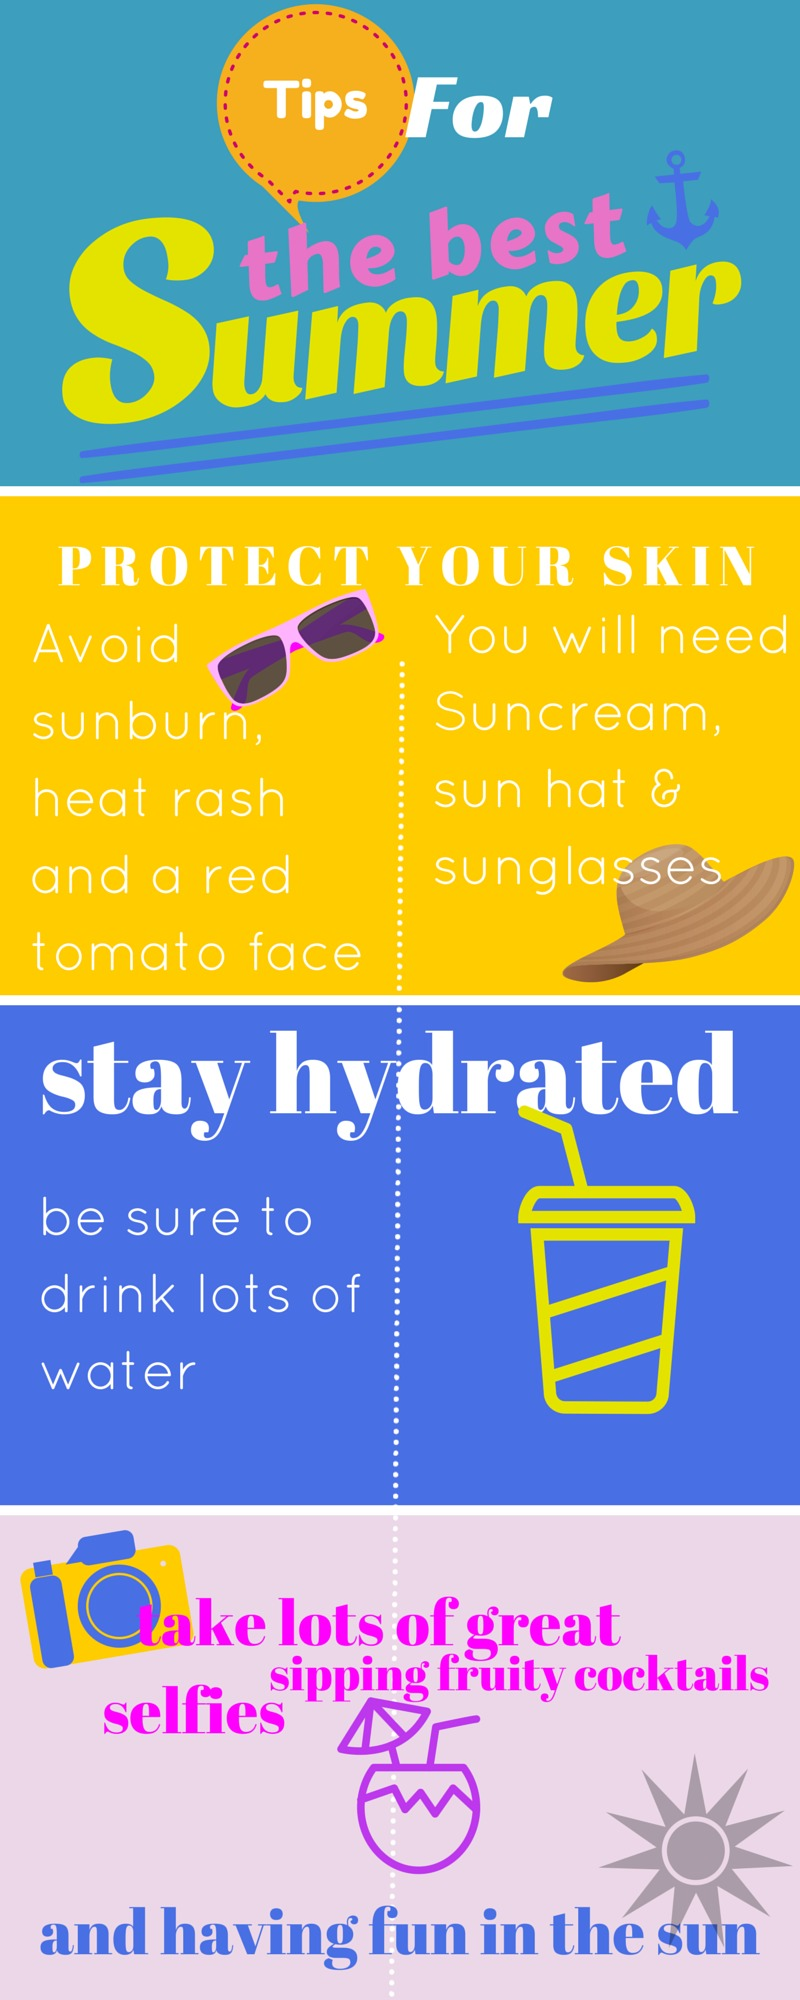 Tips for the best summer